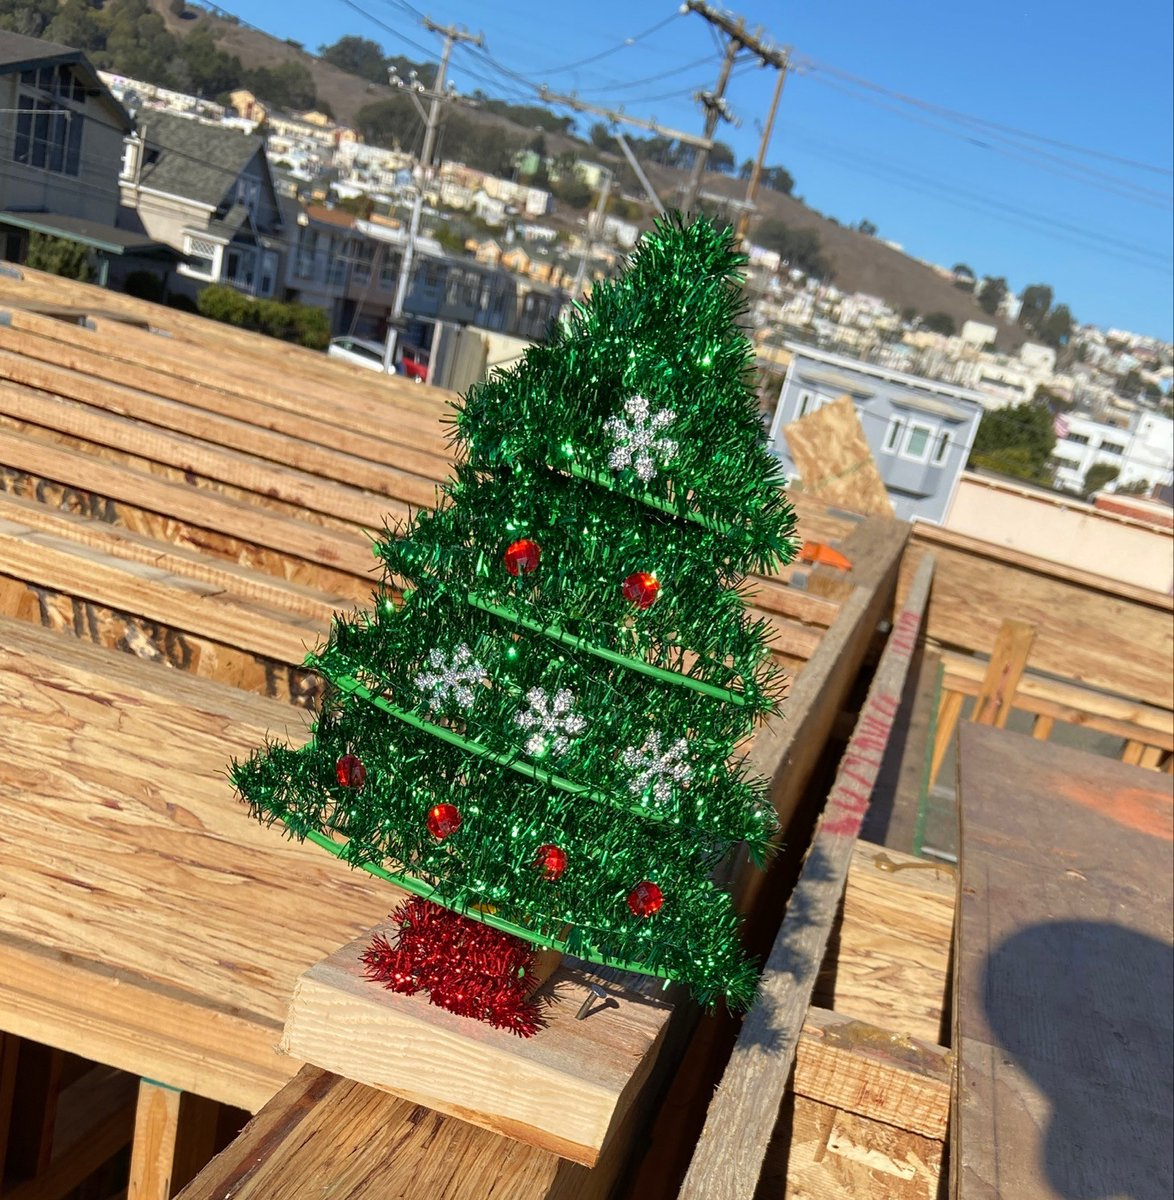 Merry Christmas to you from our site in Daly City! 🎄🎄  We wish a blessed day to everyone in our Habitat family. May we love thy neighbor this holiday season and spread joy! ❤️💚 https://t.co/mOCcRHhPWs